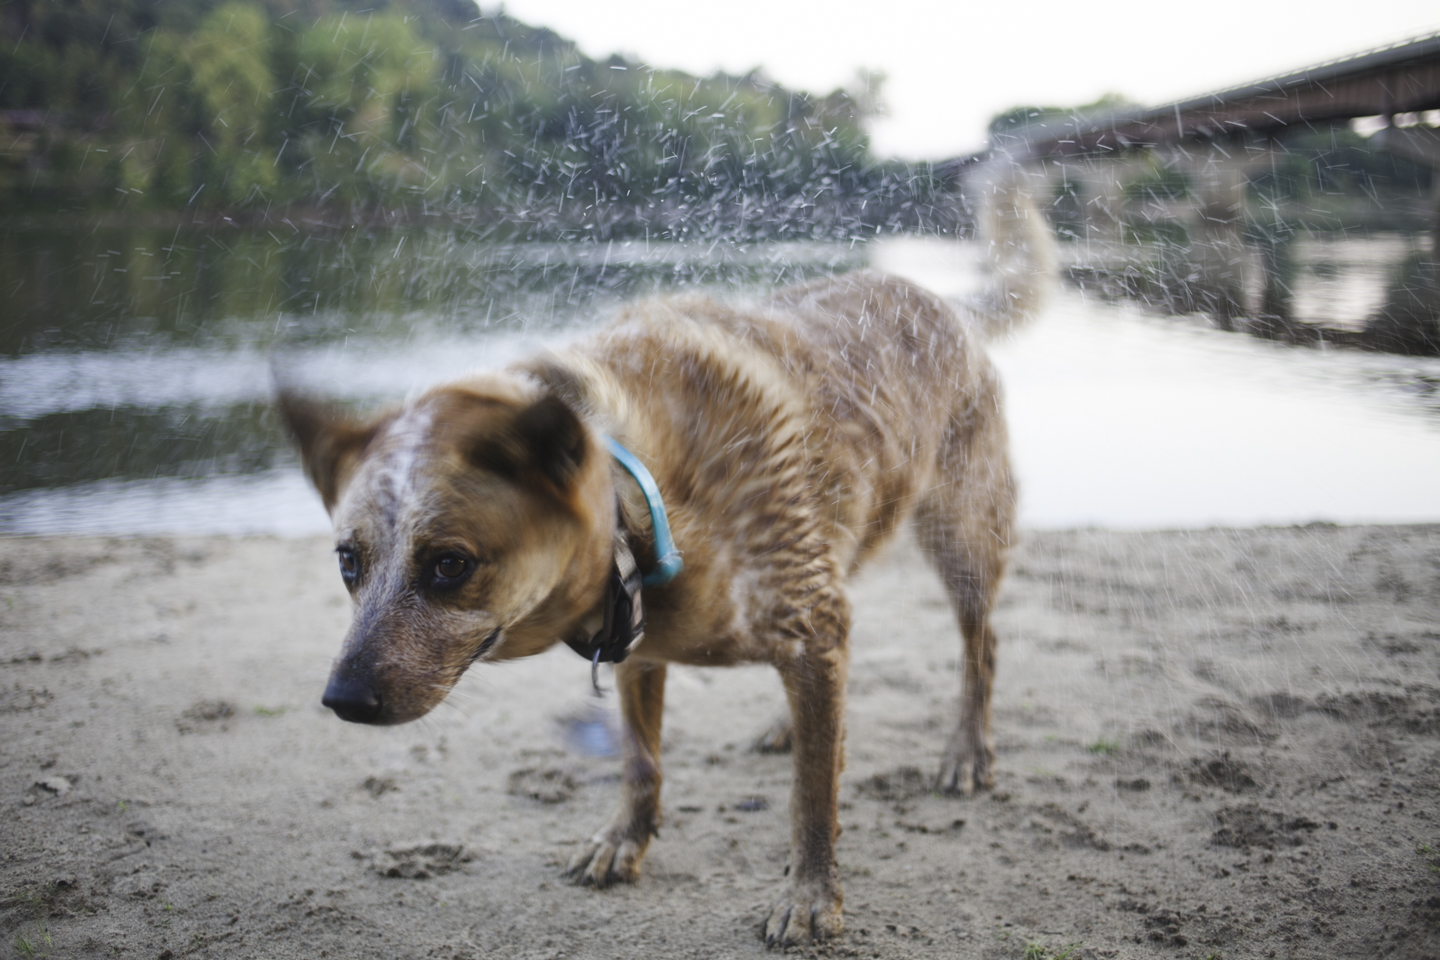 An 11-year-old Red Heeler named Birdie shakes off after a dip in the Wisconsin River. The beach beneath Highway 23 is a popular park, especially great for a dog with arthritis who needs low-impact exercise like swimming.